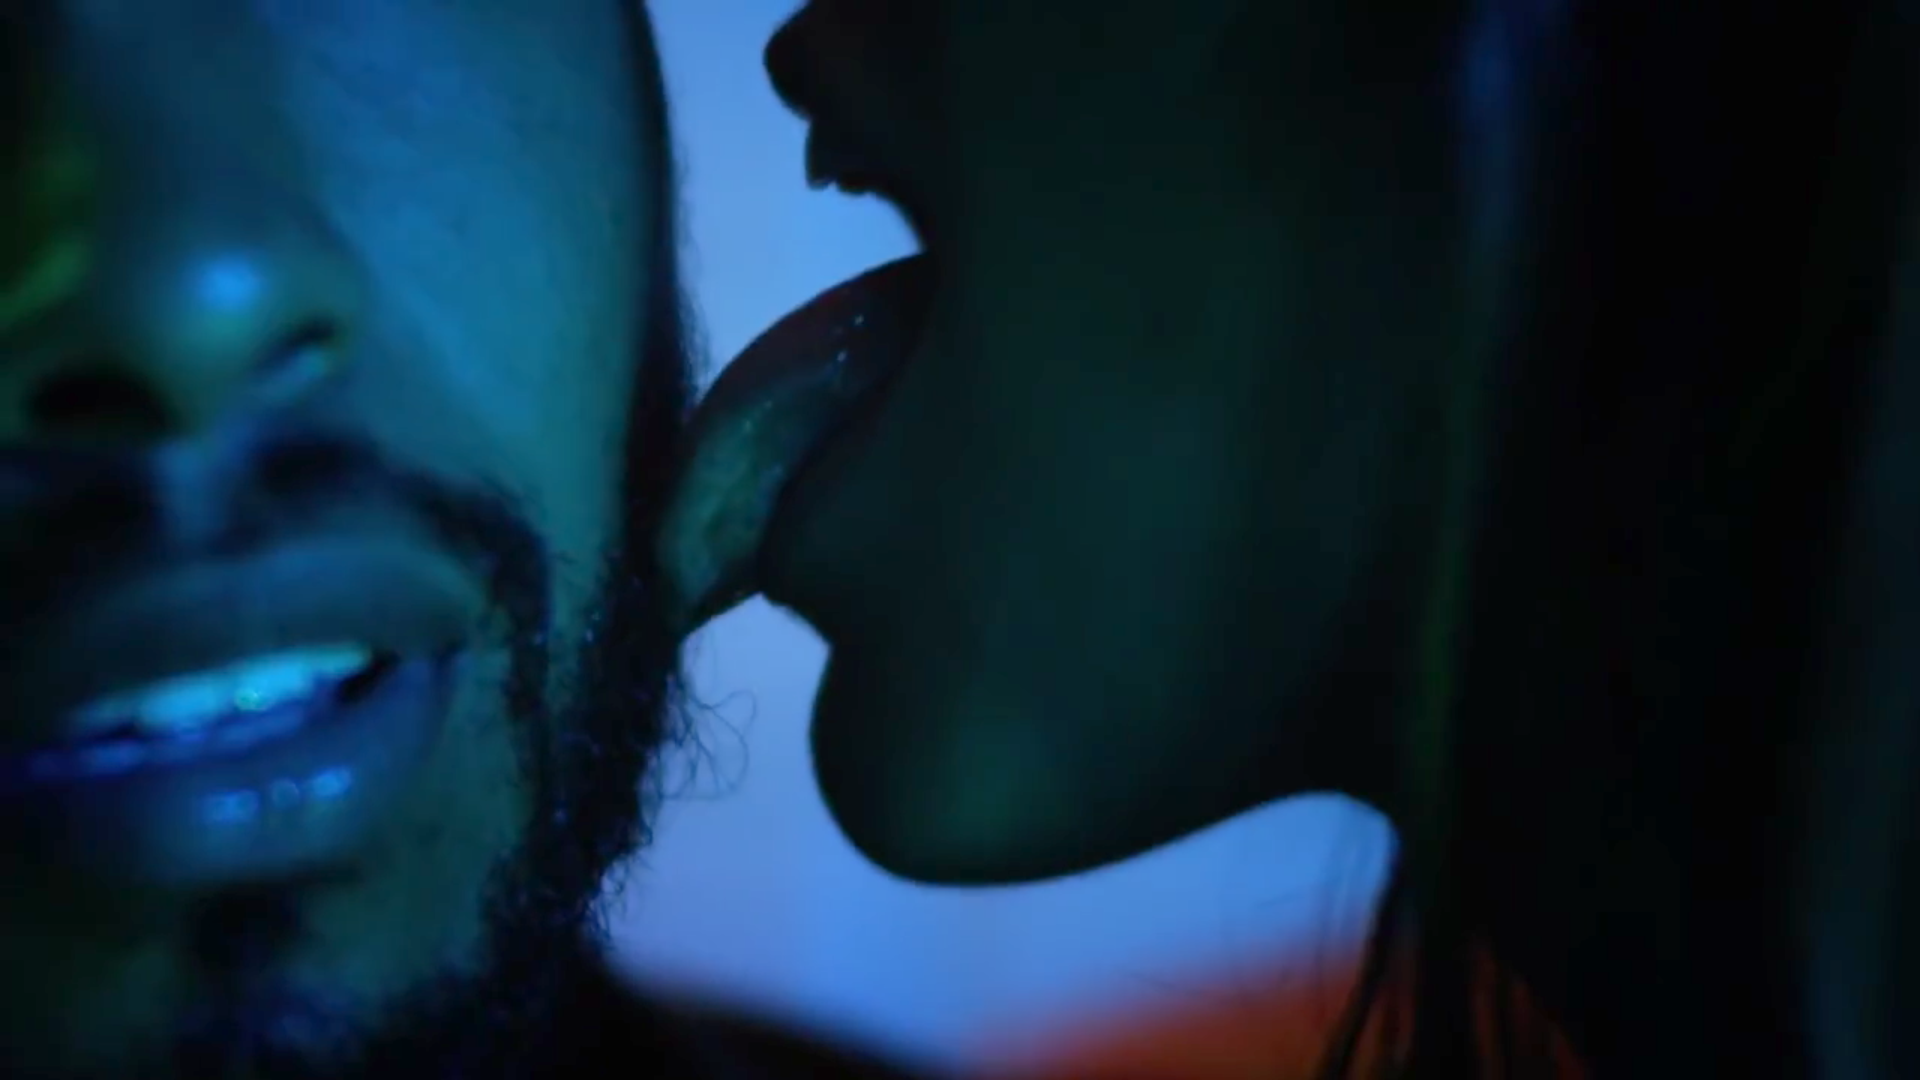 Miguel having the side of his face including his beard licked in the Waves video.jpg